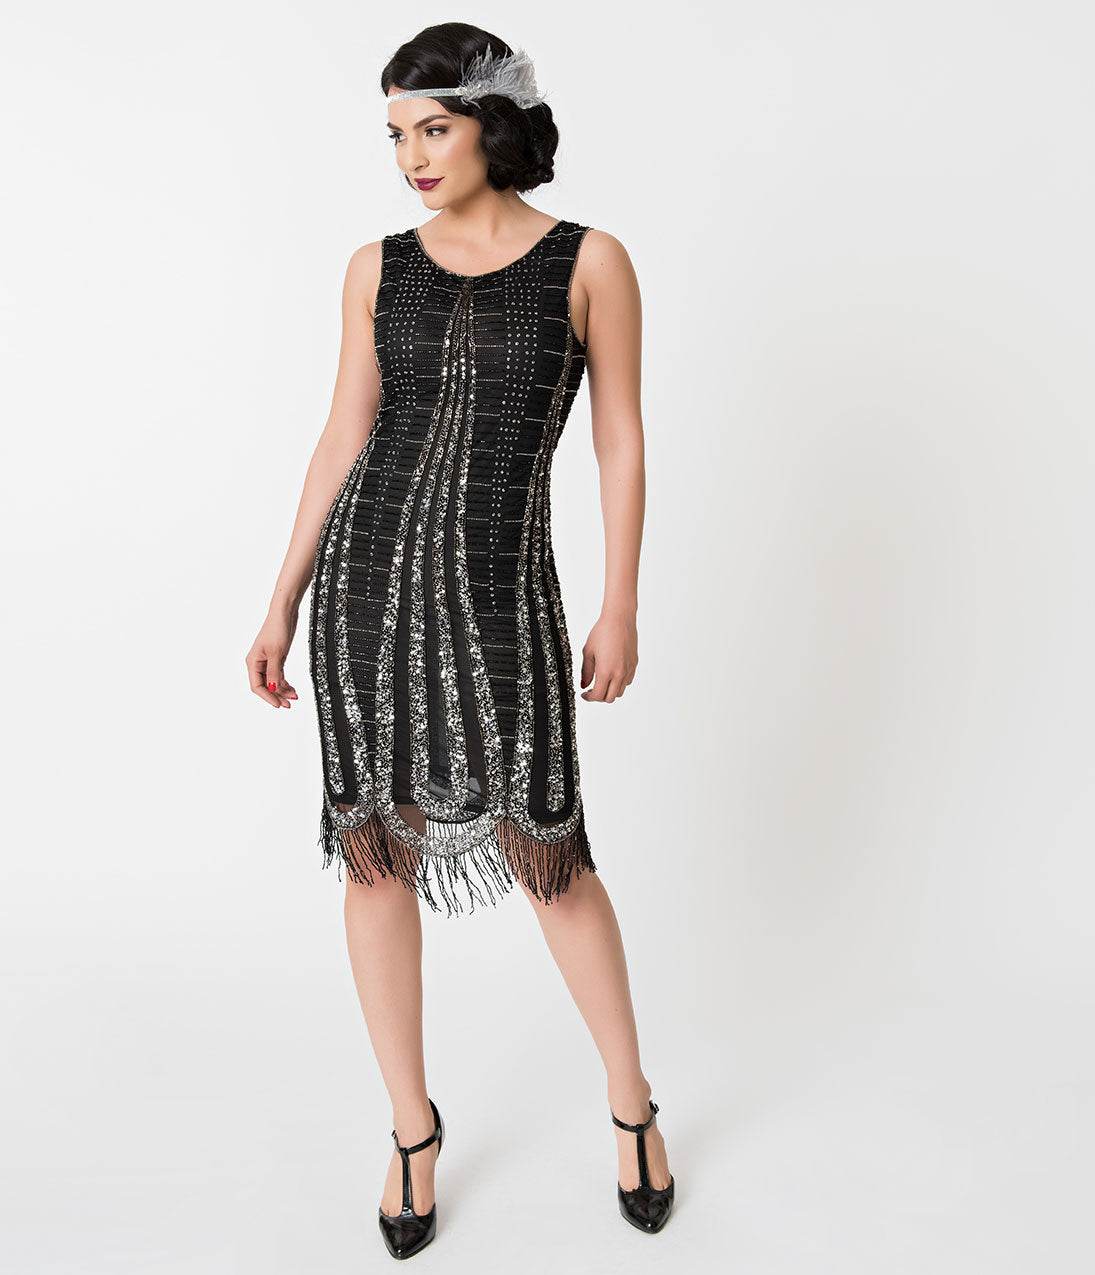 1920s Clothing Unique Vintage Black  Silver Beaded Fringe Romane Cocktail Dress $60.00 AT vintagedancer.com